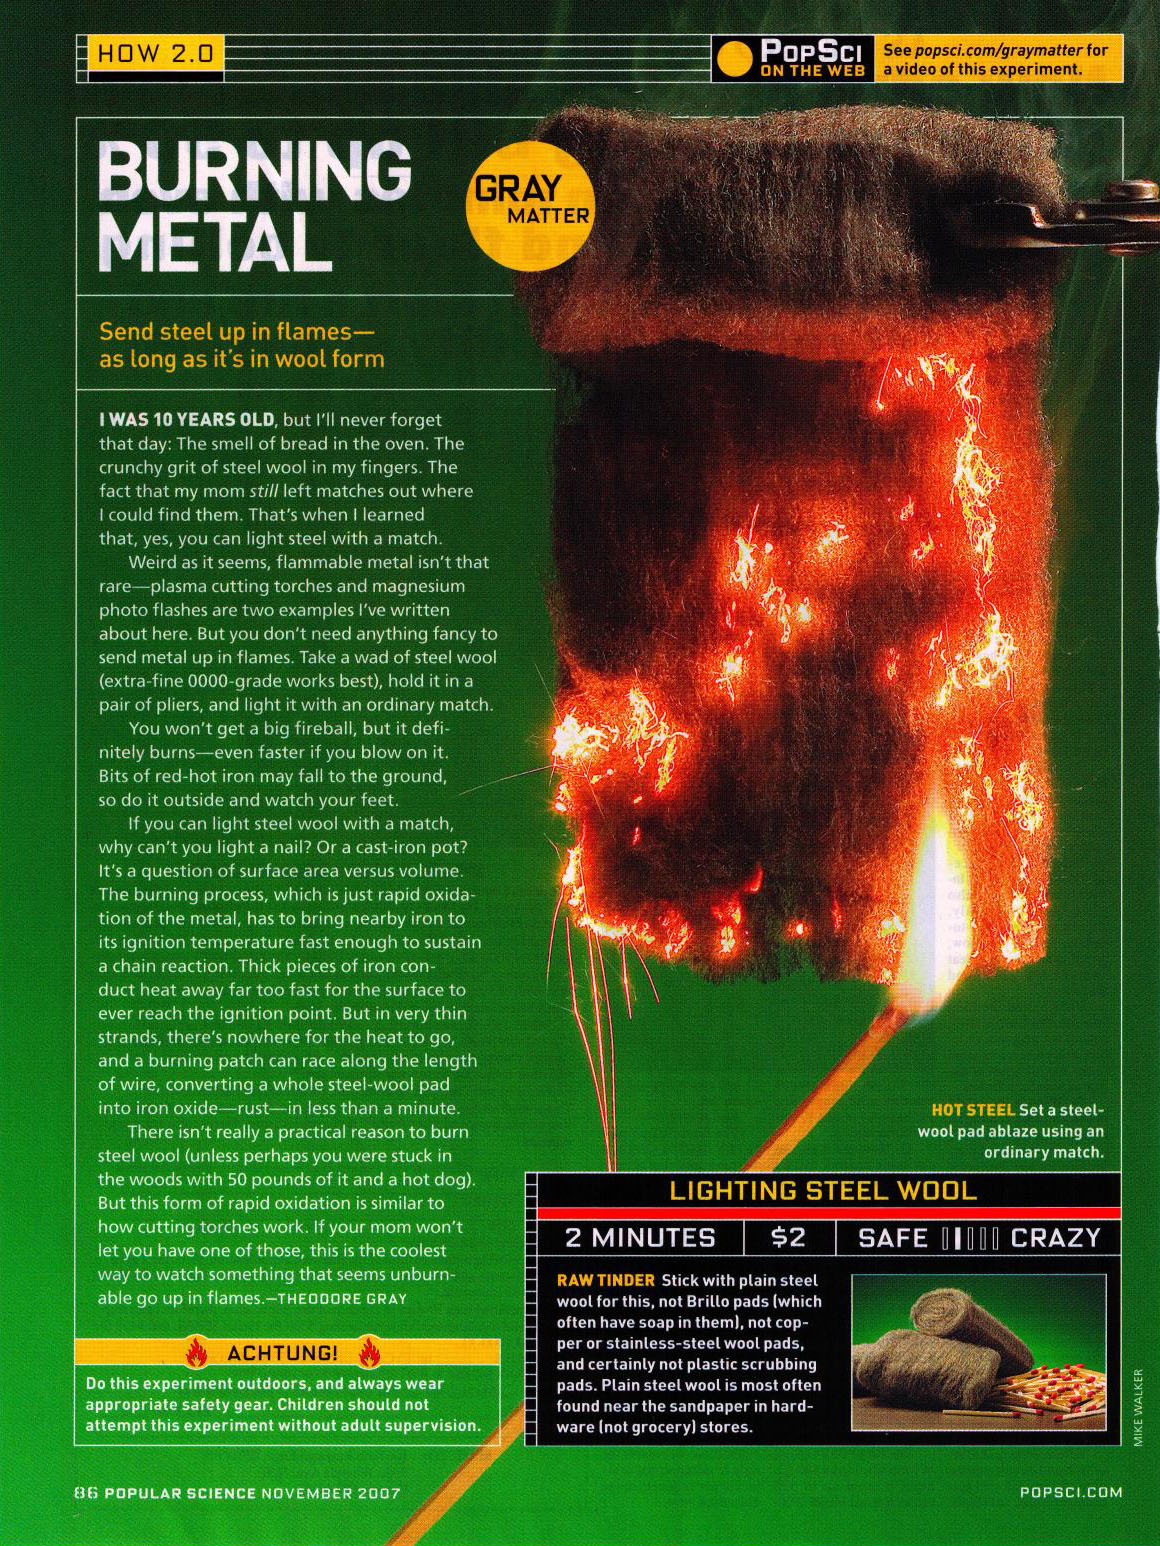 Burning Metal Popular Science column by Theodore Gray